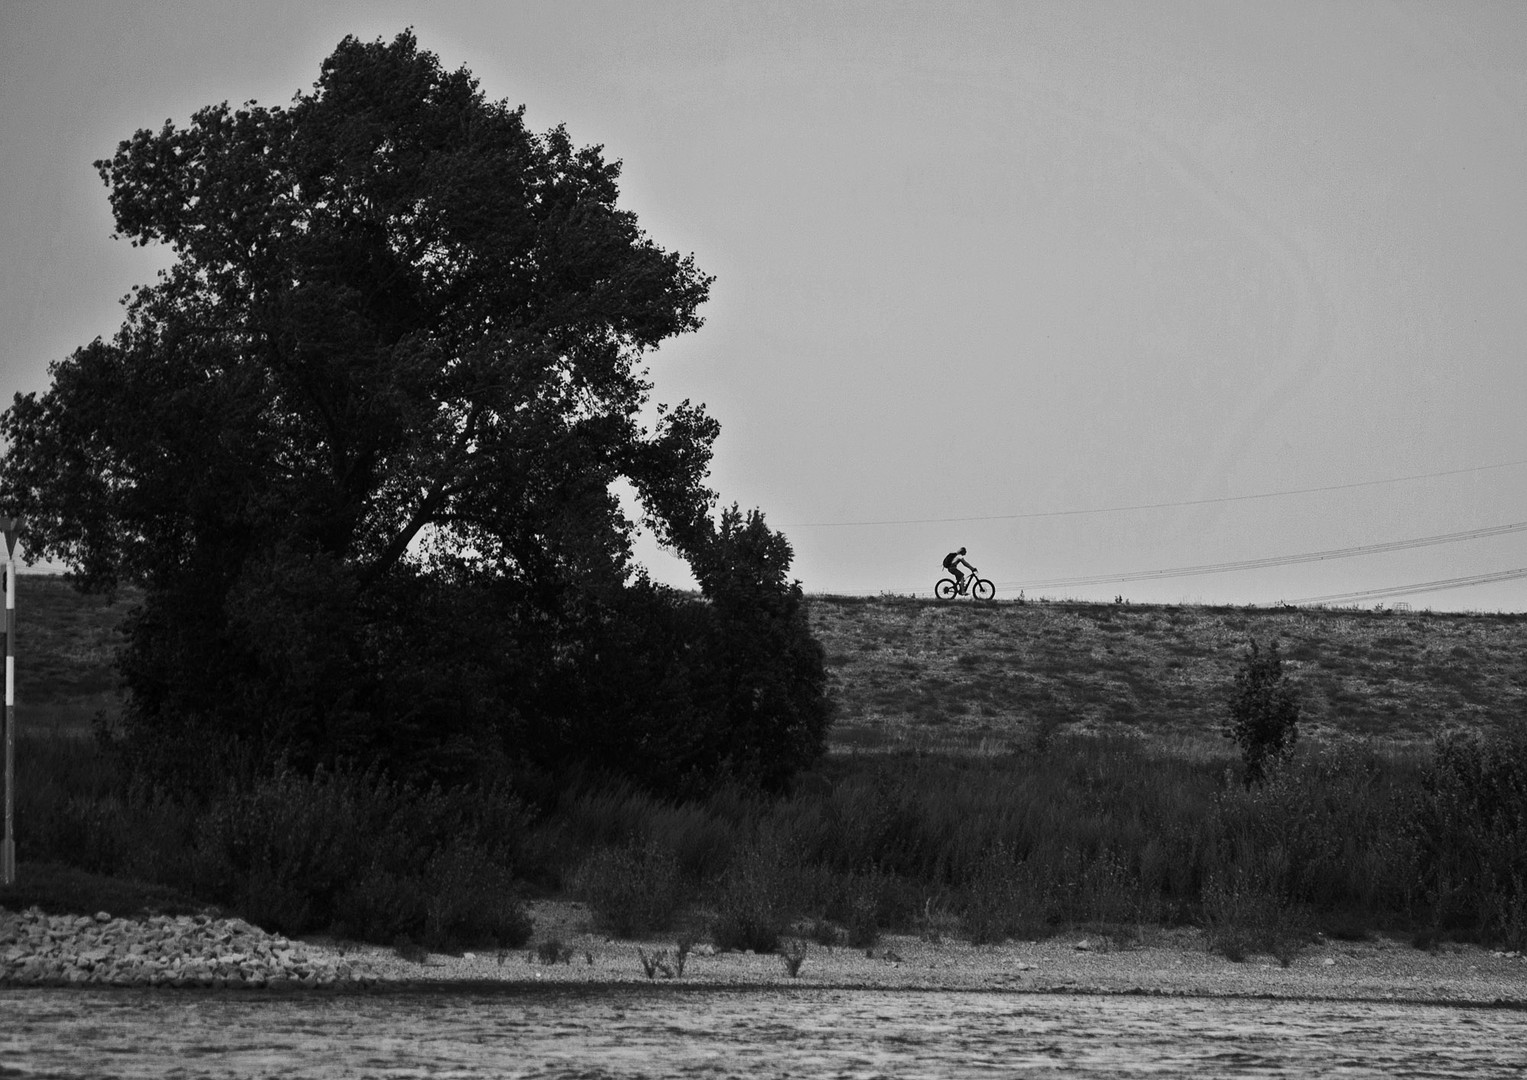 the lonely rider....